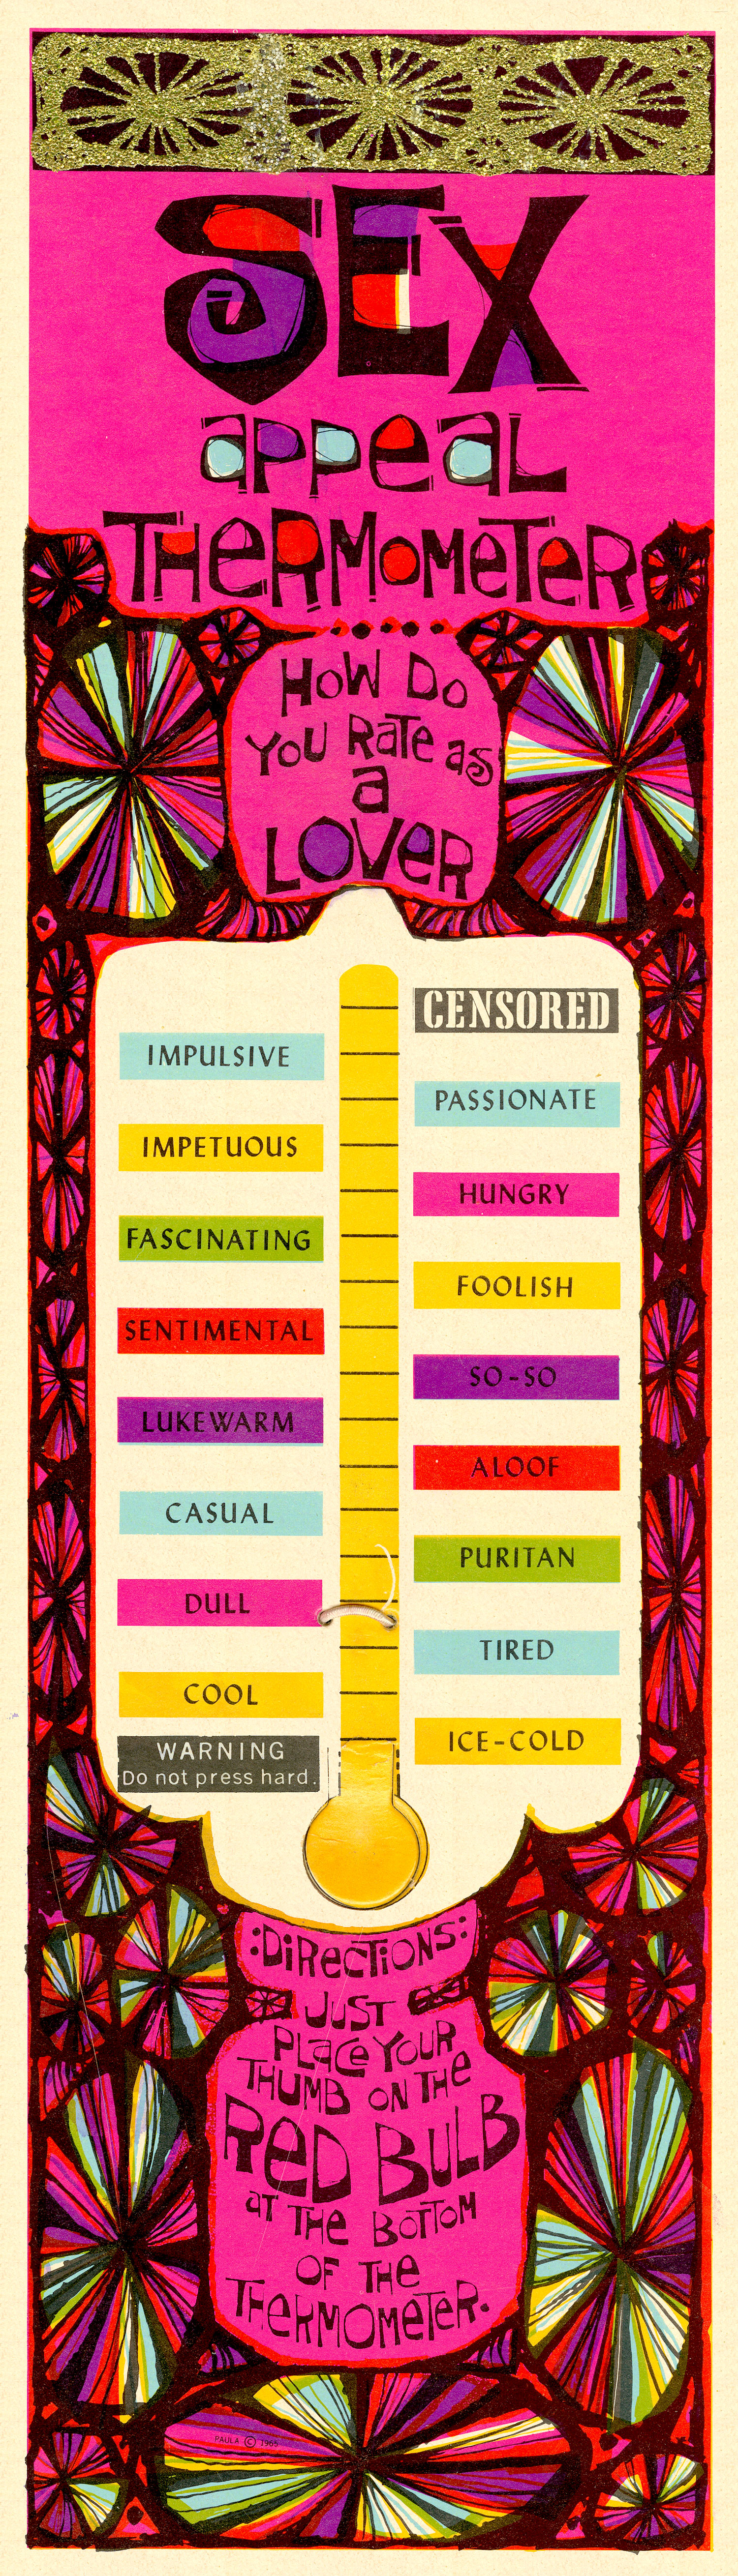 sex-appeal-thermometer.jpg